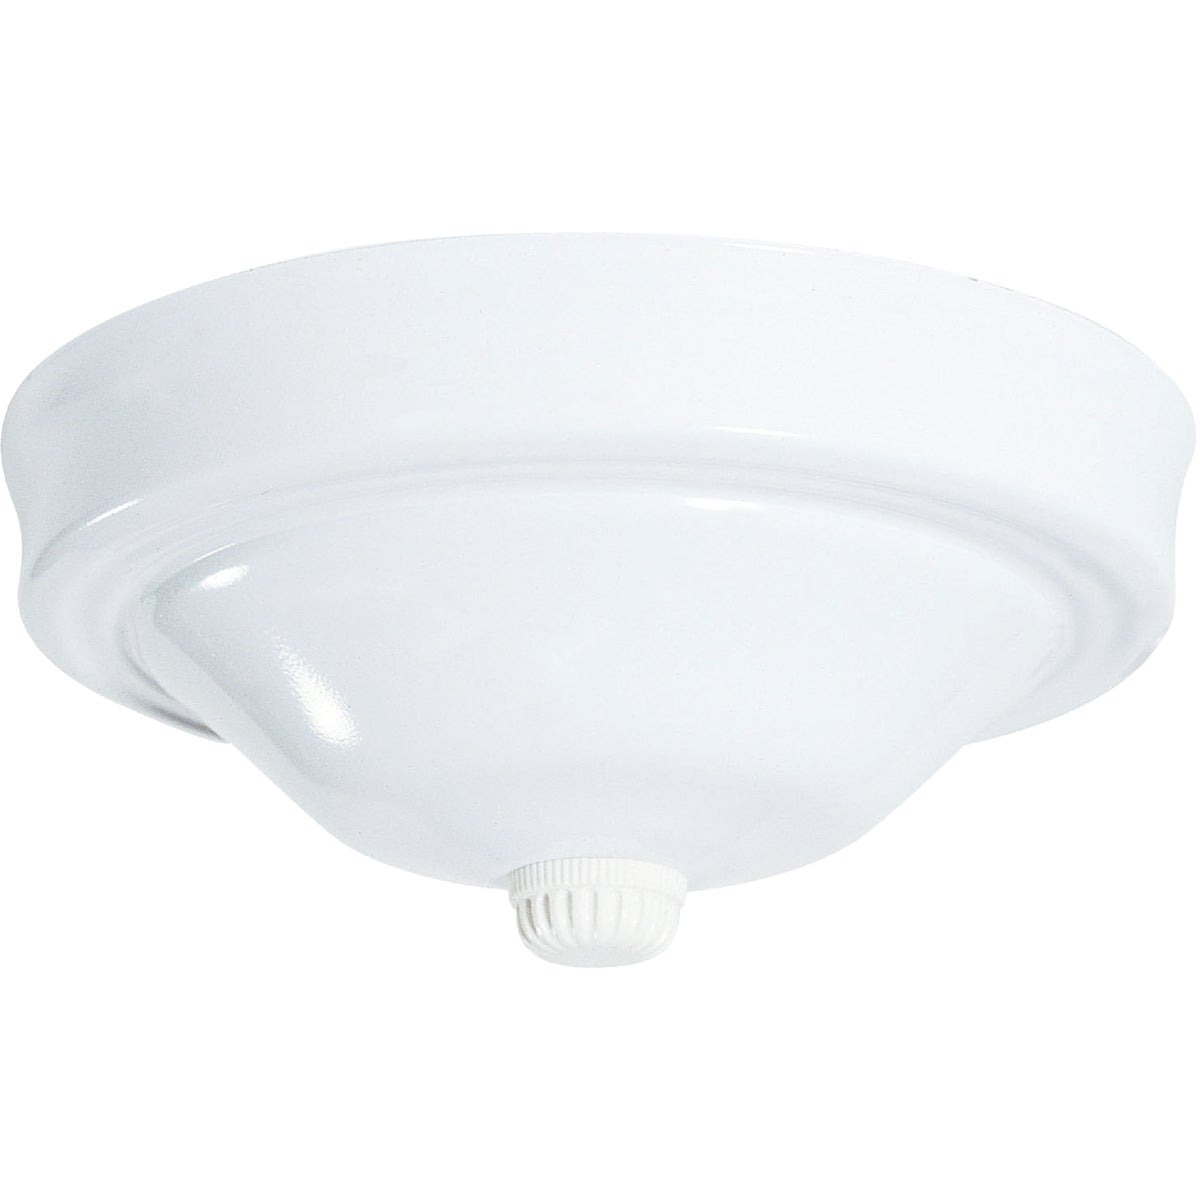 WHT BLANK CANOPY KIT - 70045 by Westinghouse Lightng